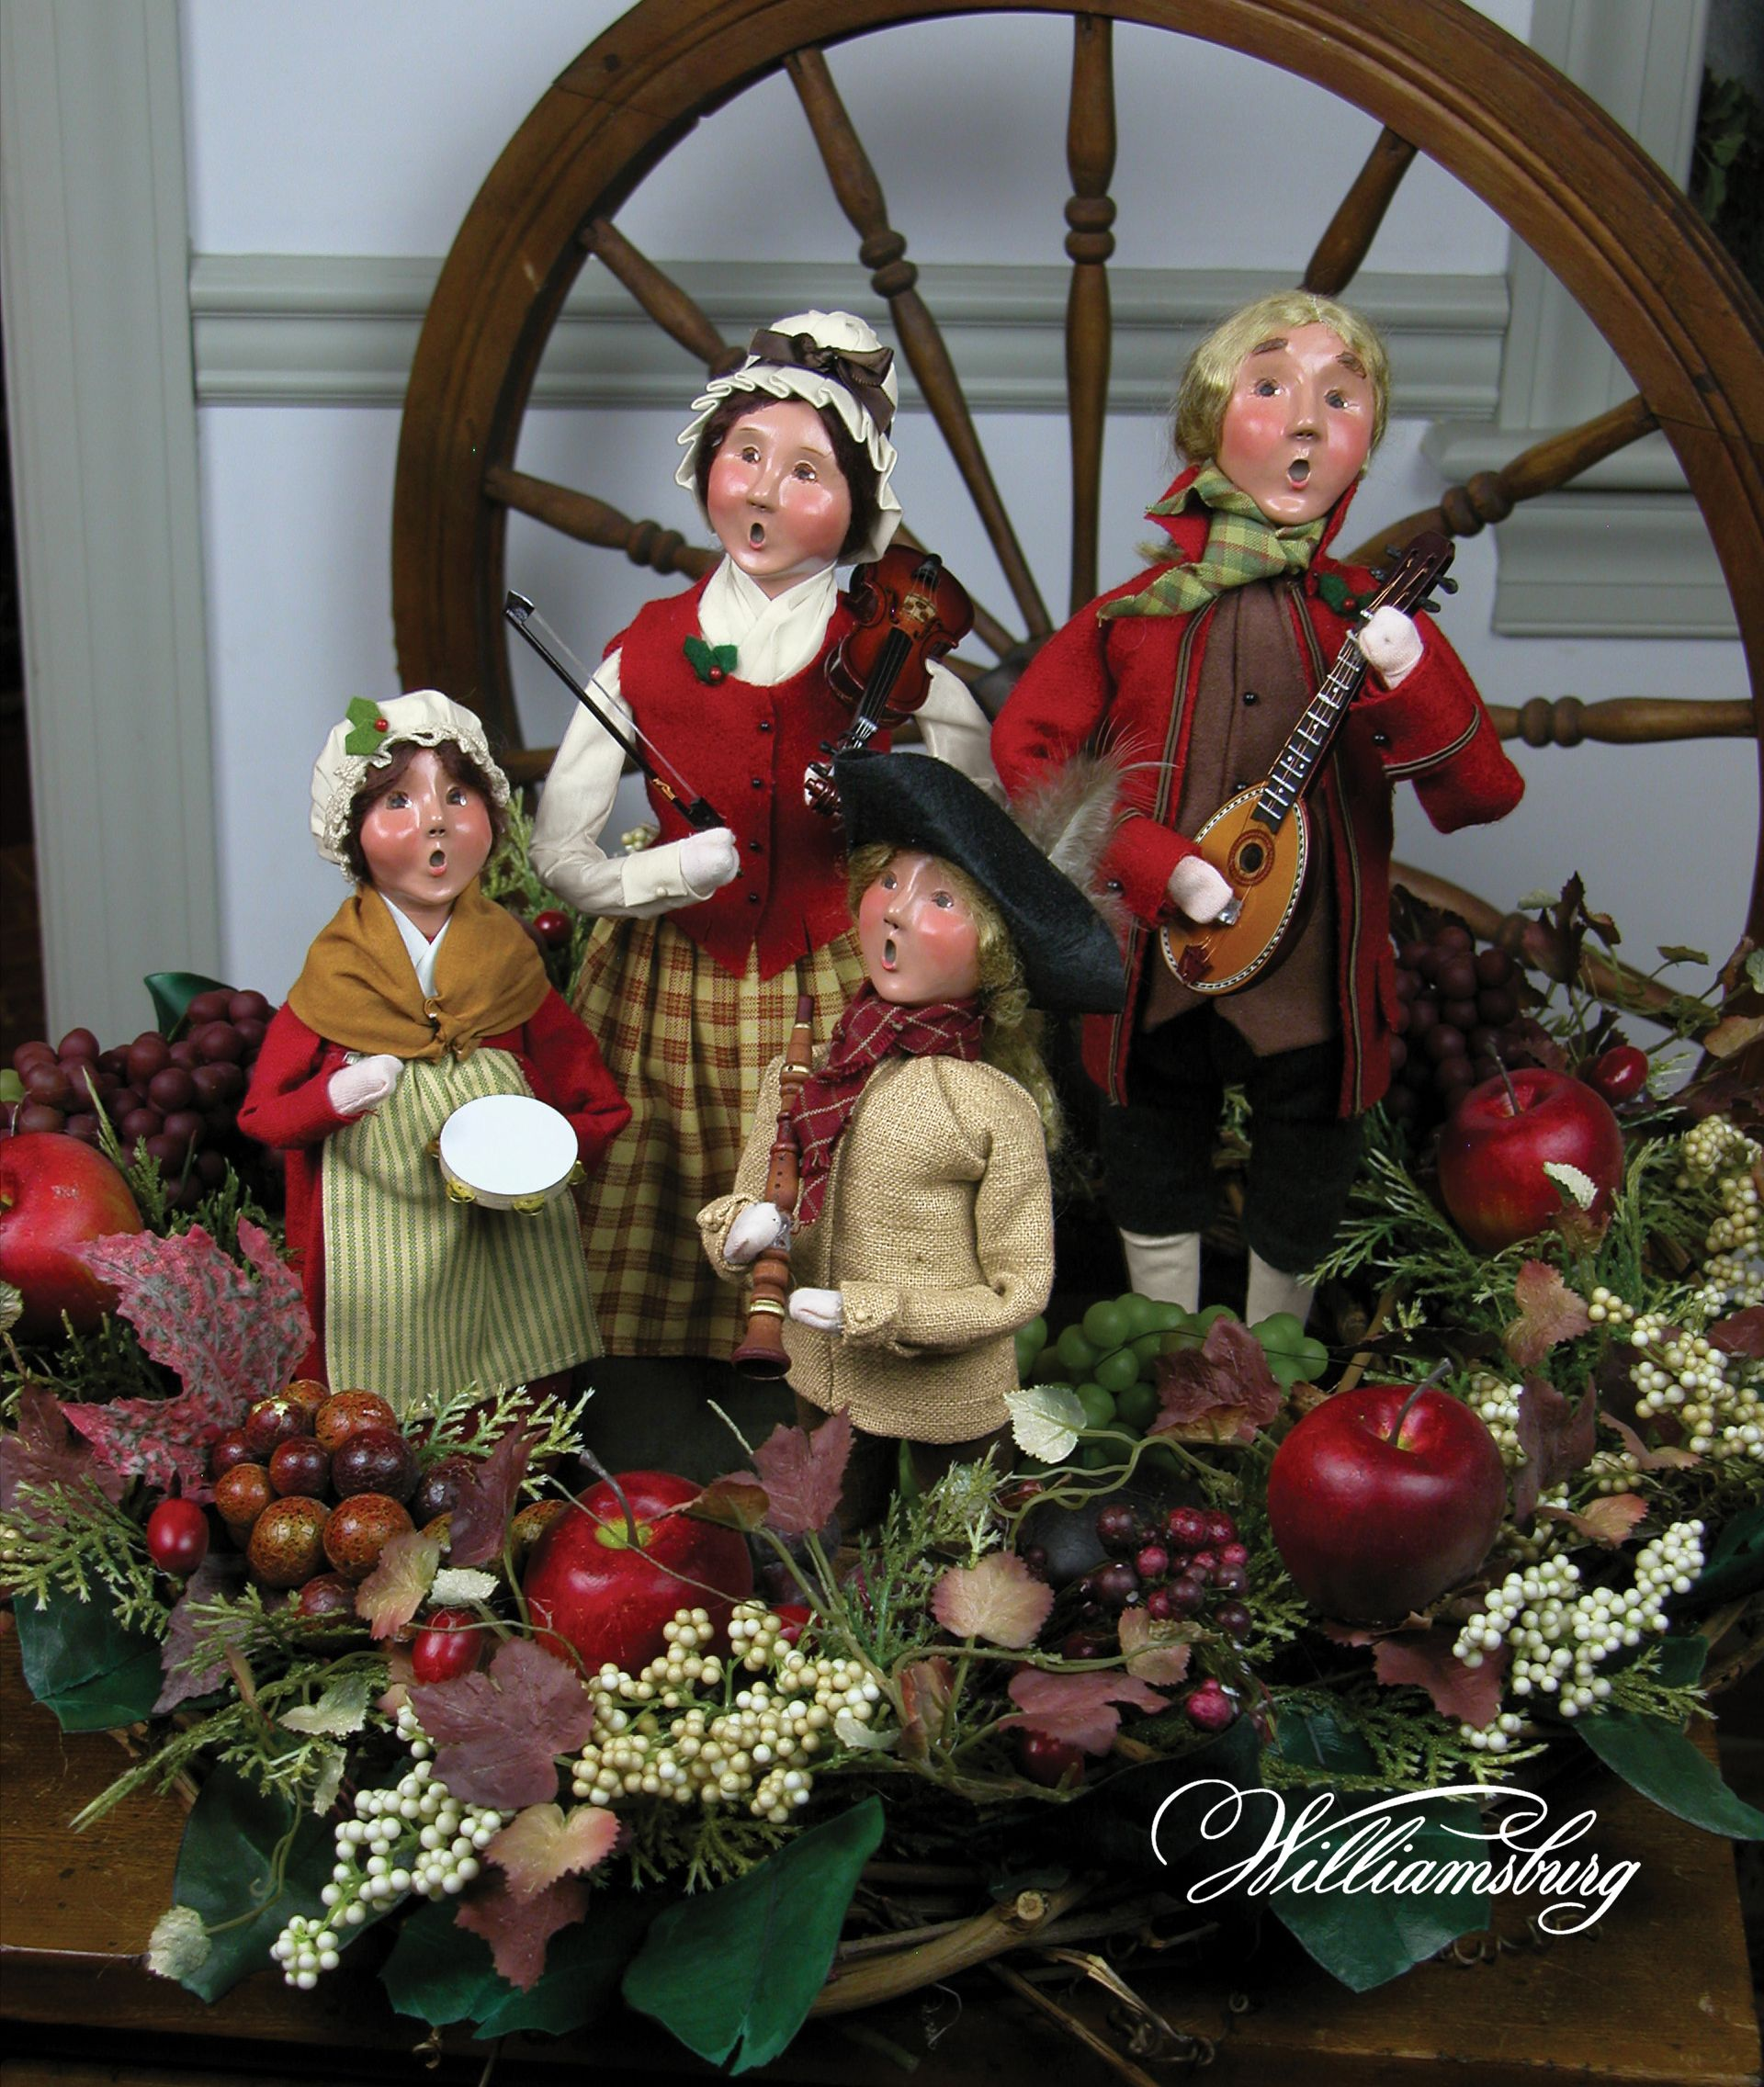 Christmas Carol Singers Decorations: Byers' Choice Carolers – Colonial Musicians